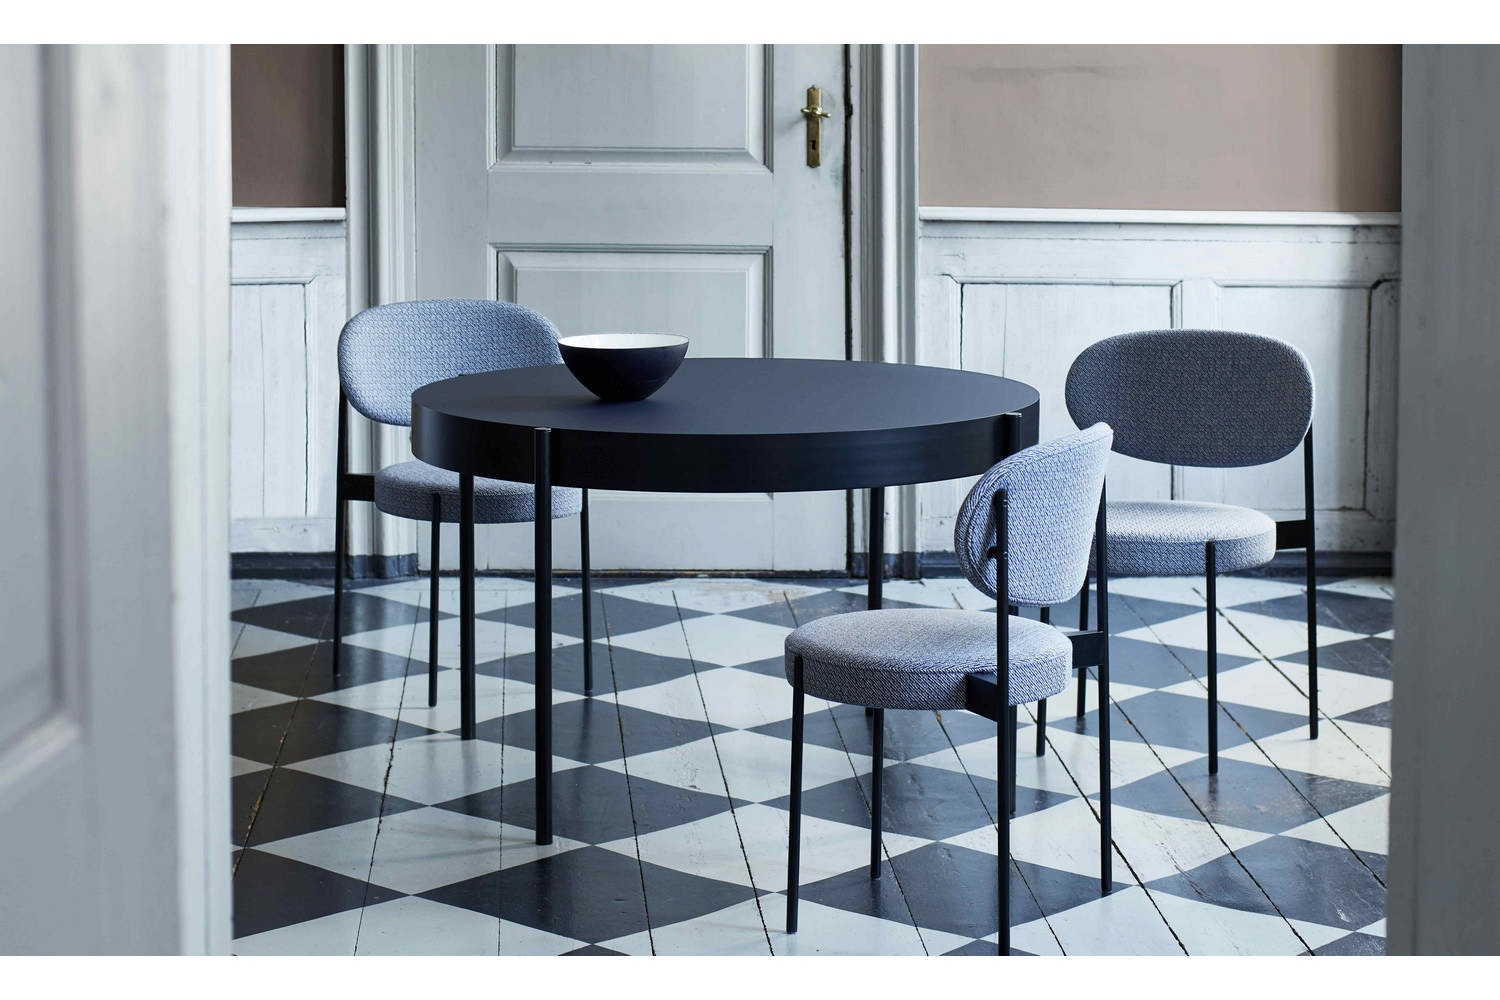 Series 430 Table by Verner Panton for Verpan